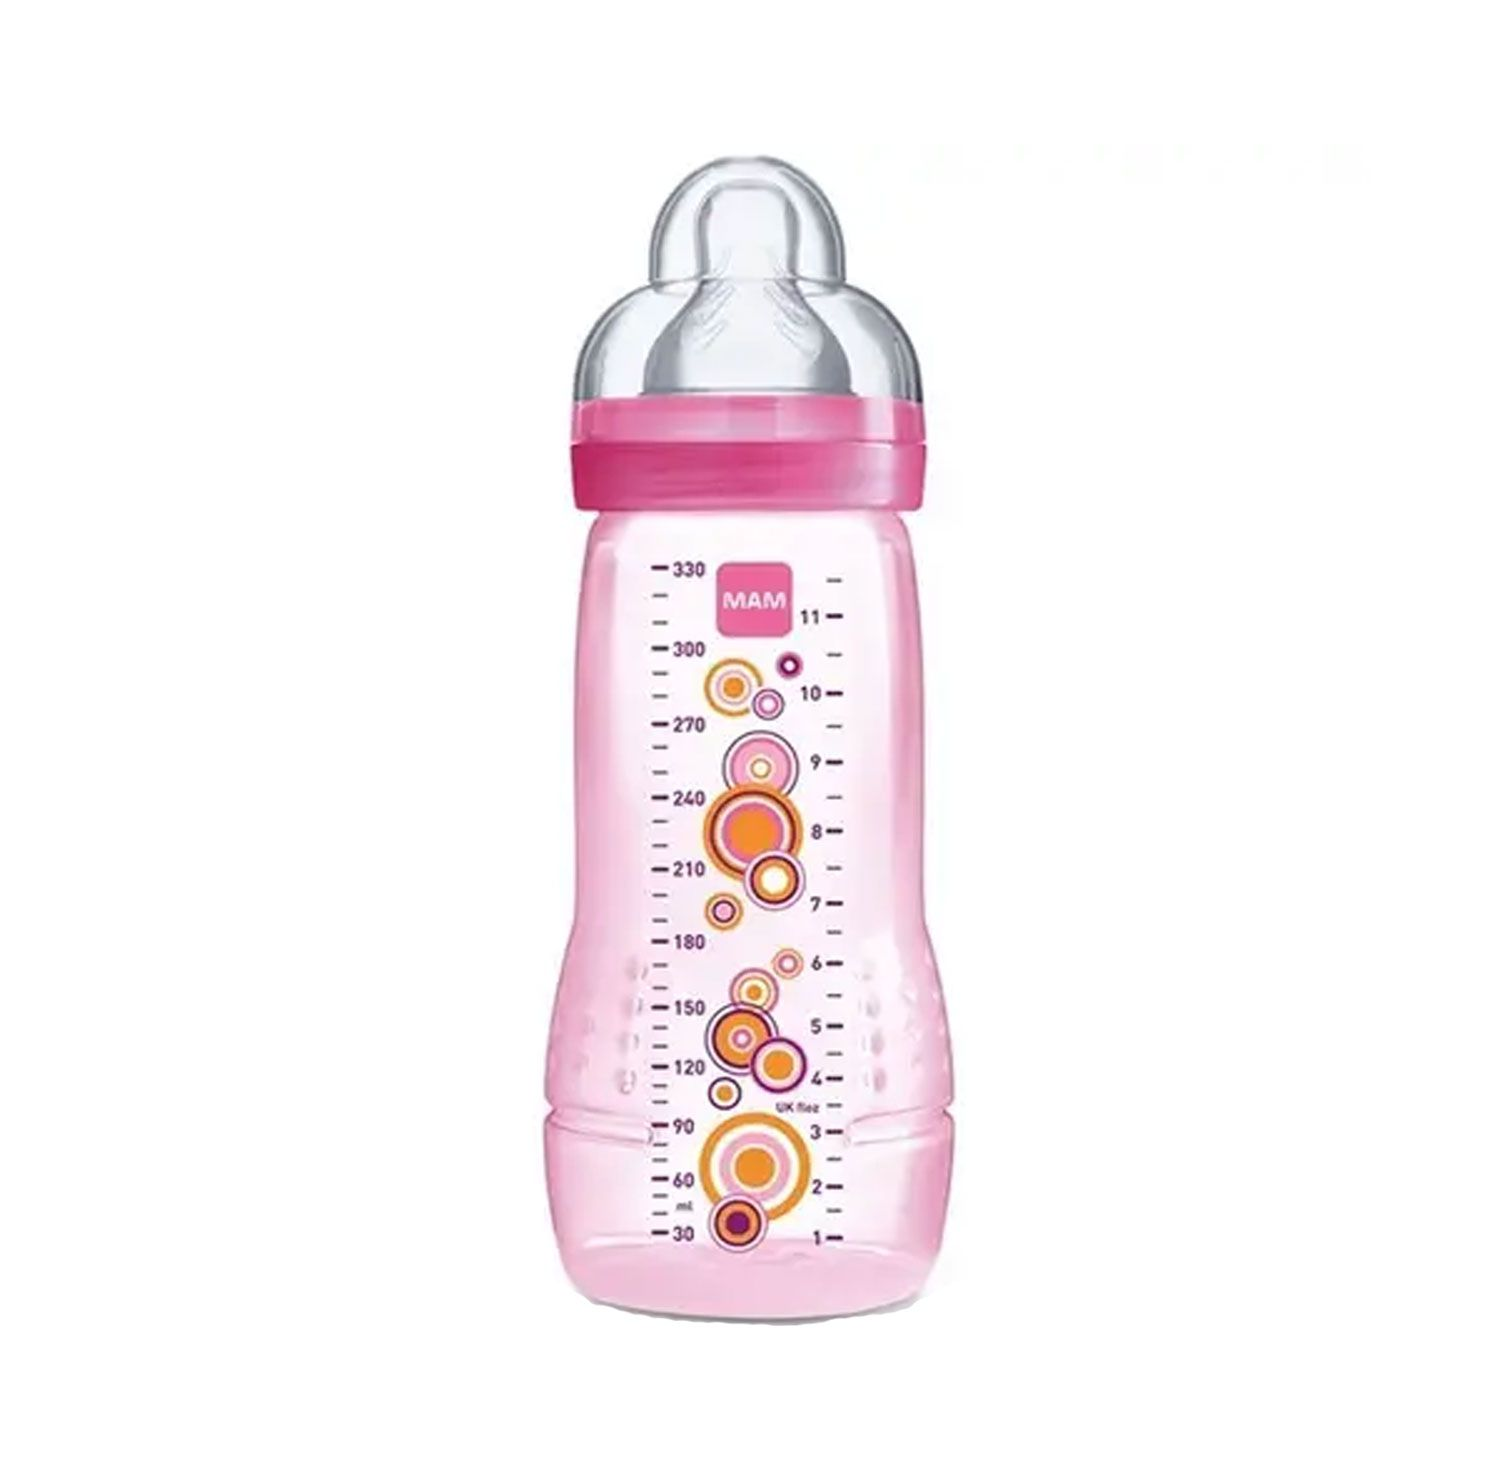 MAMADEIRA EASY ACTIVE FASHION BOTTLE MAM REF:4834 330ML 4 M+